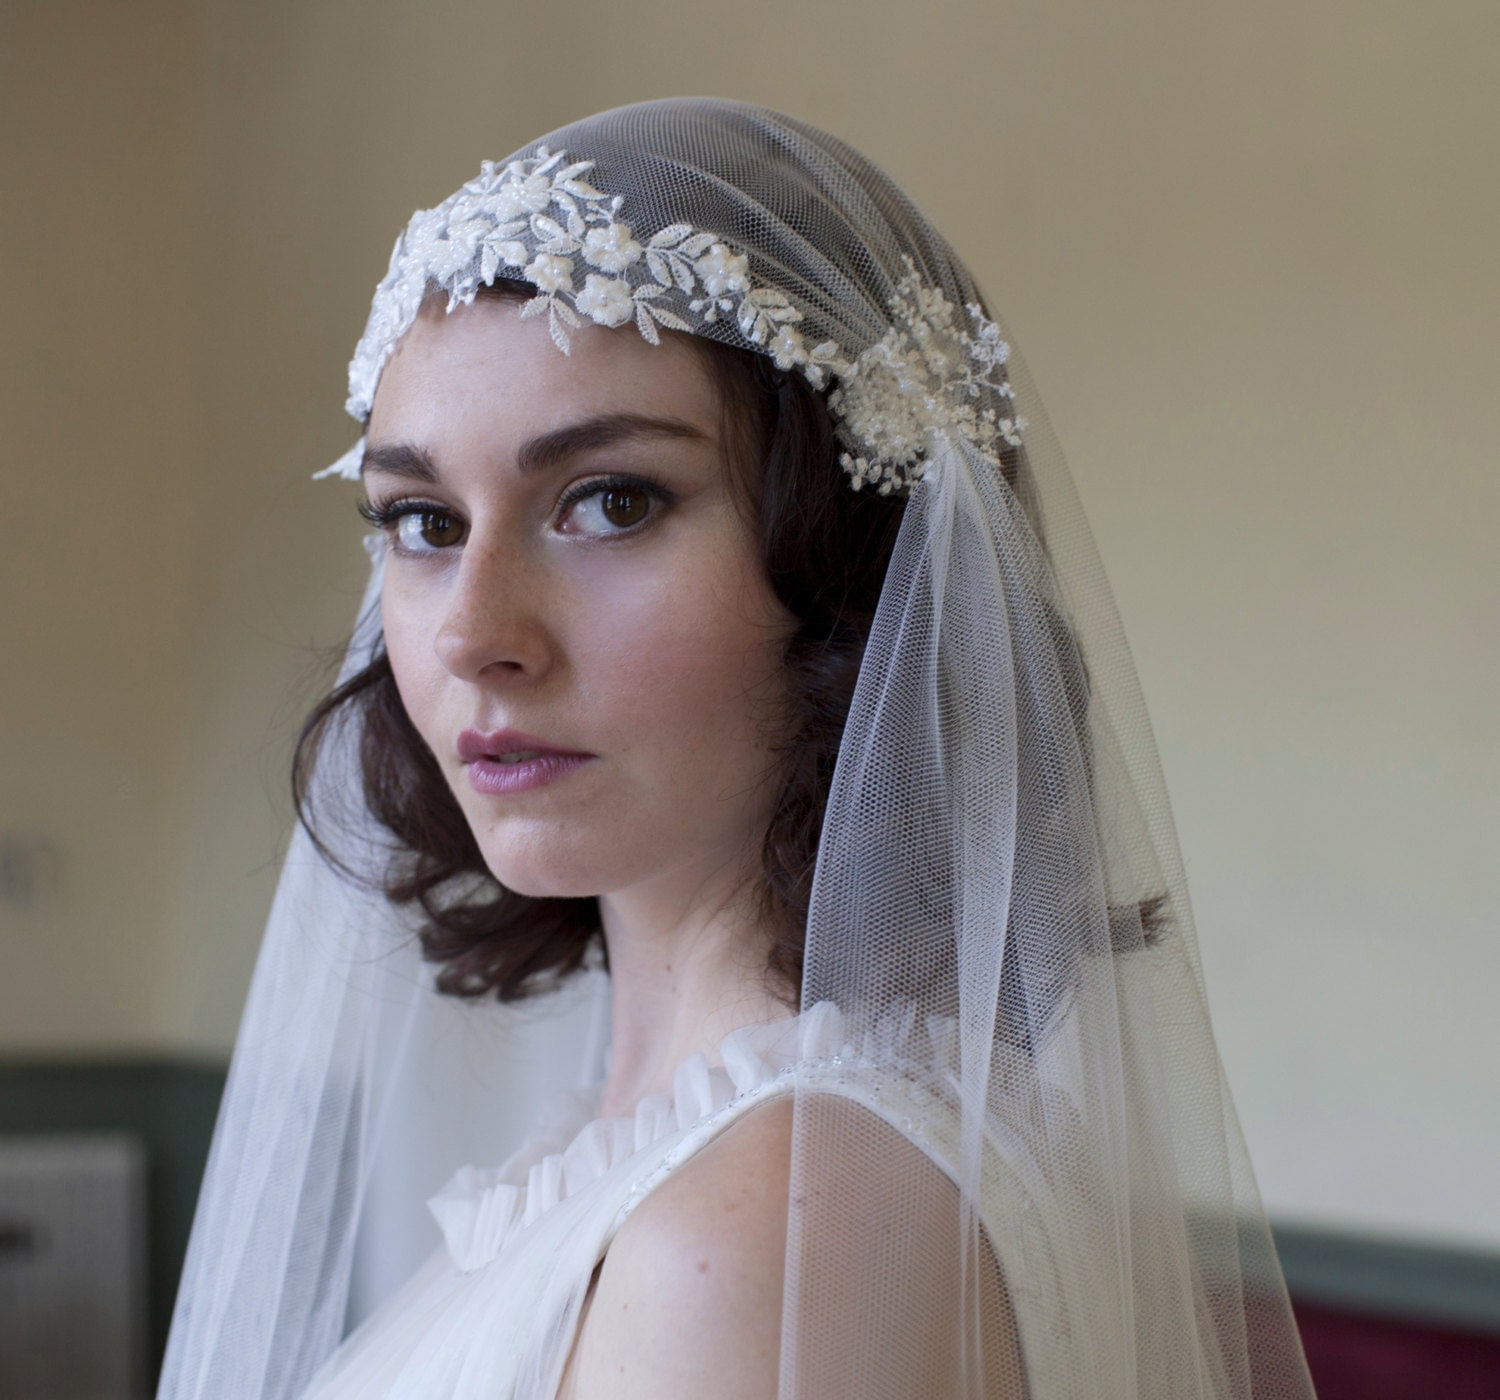 Dramatic Juliet Cap Veil With Beaded Floral Lace Kate Moss